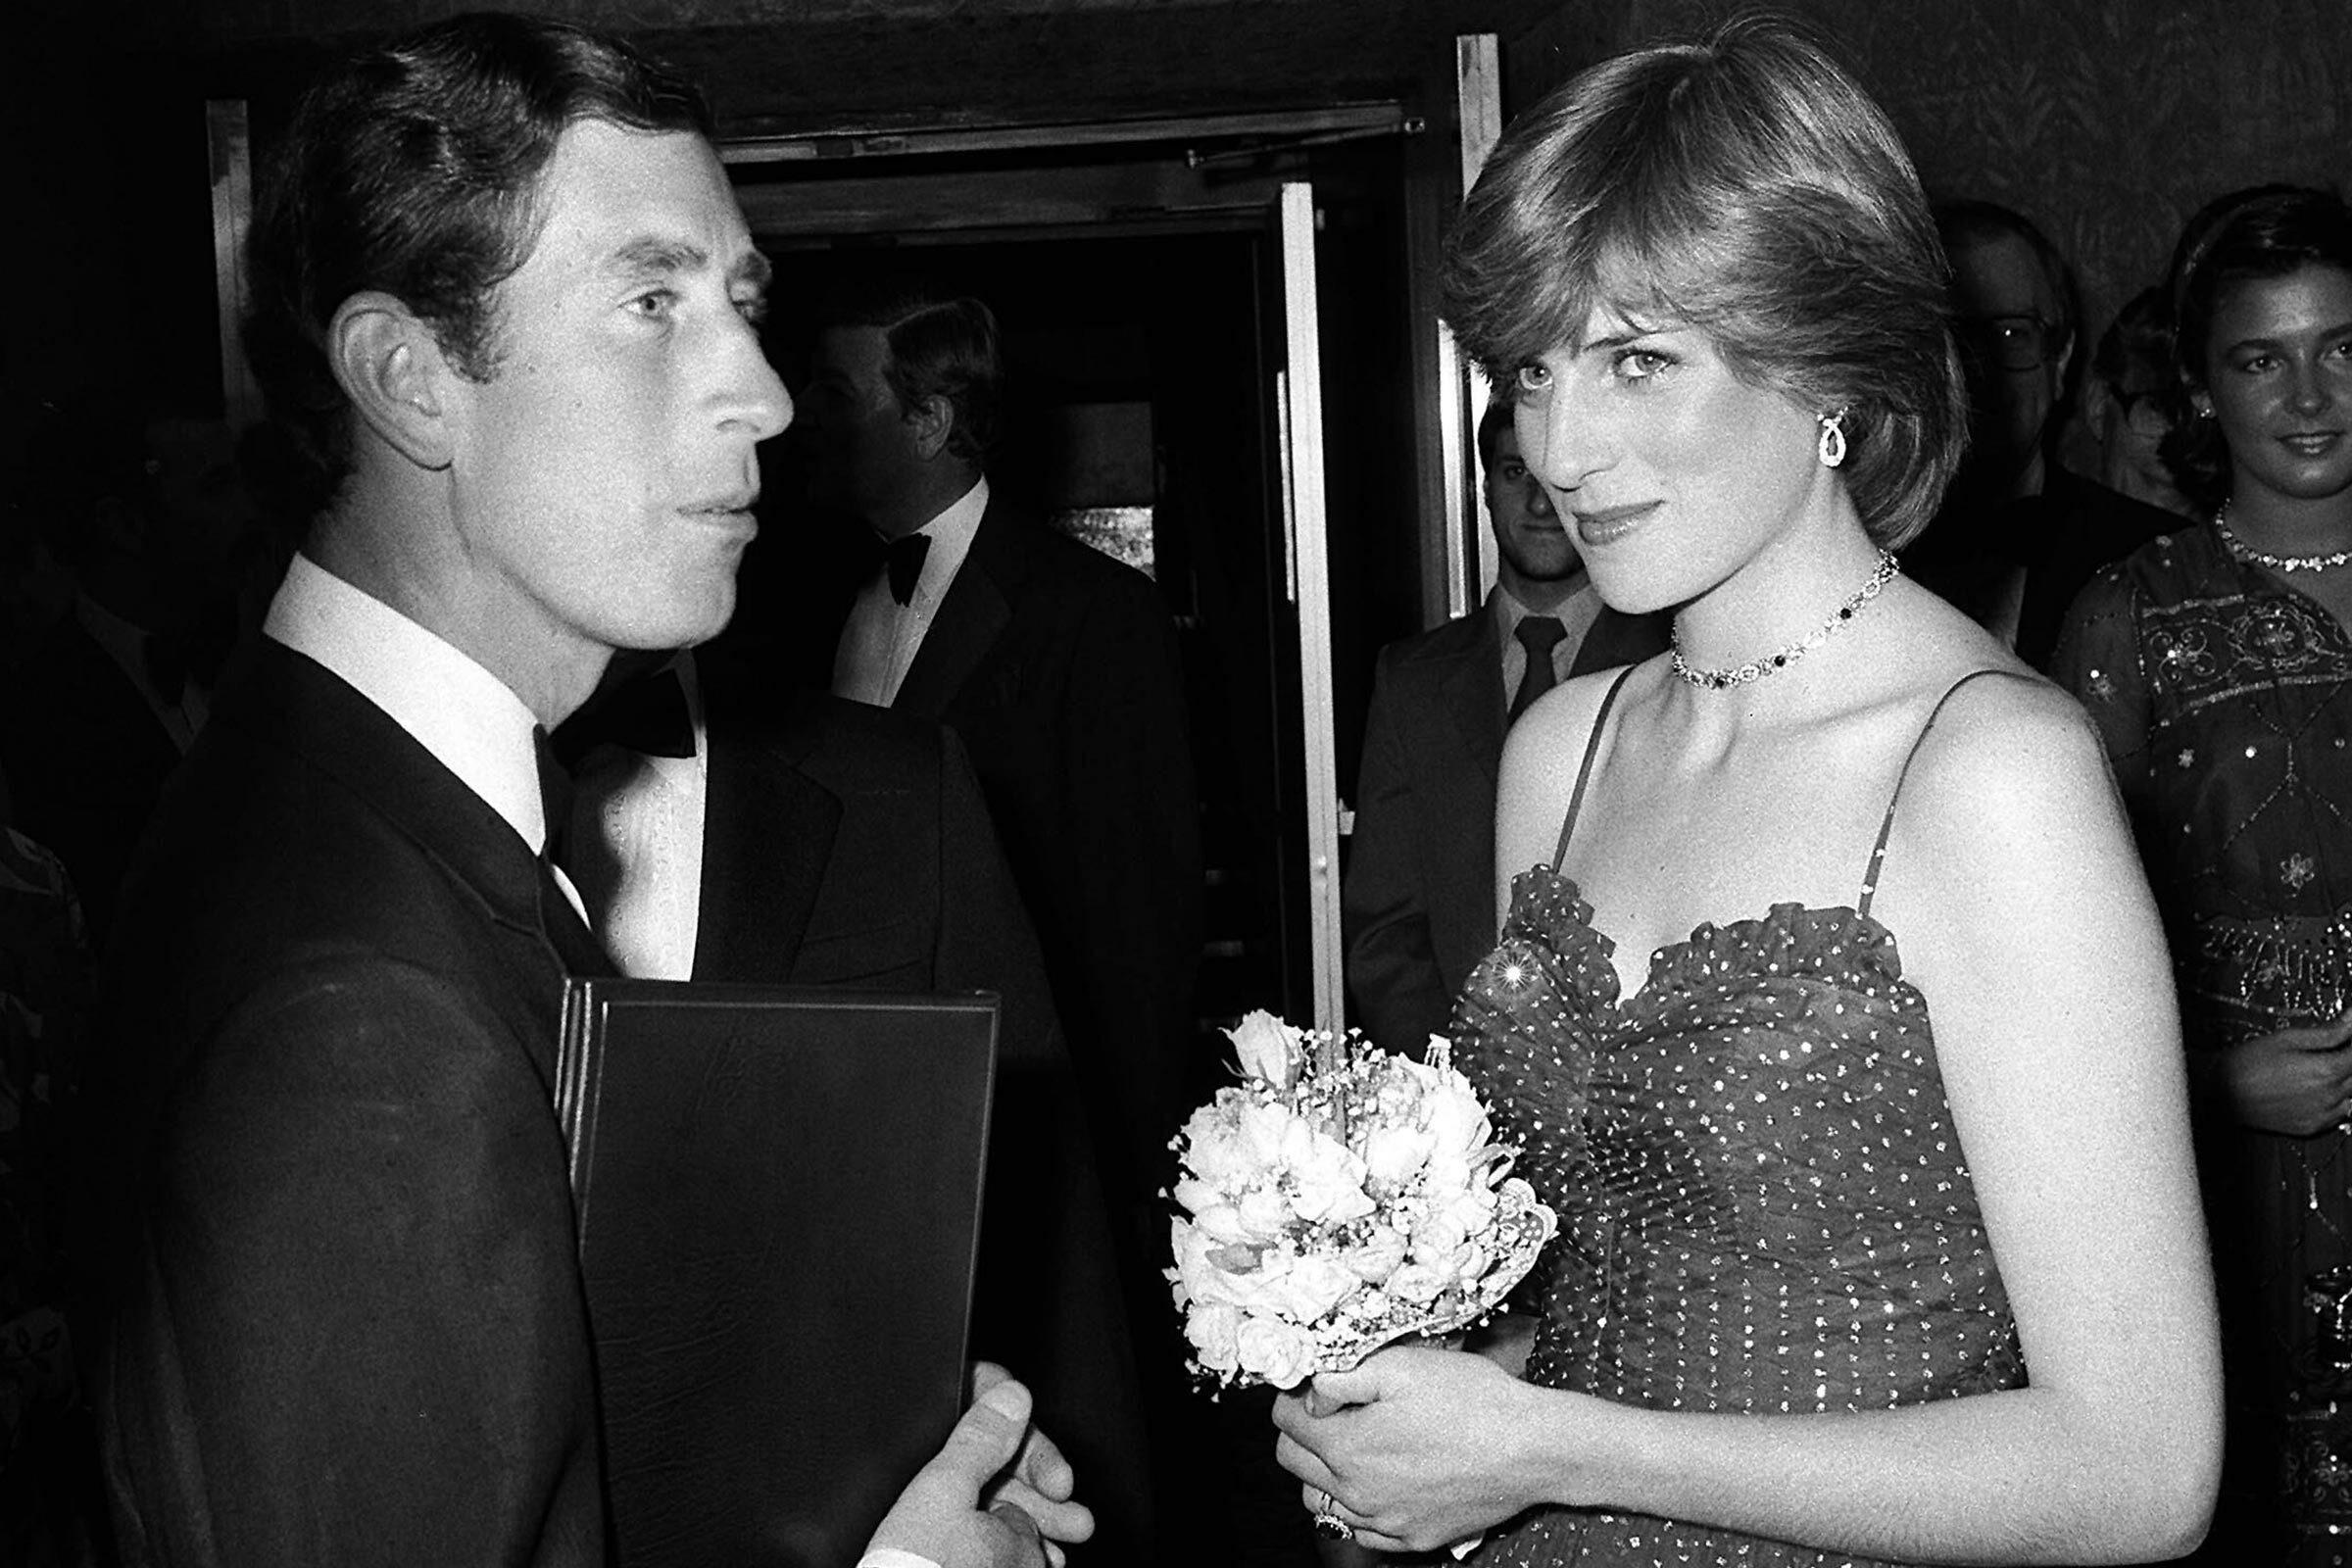 Diana and Charles pictured at a glamorous evening event.